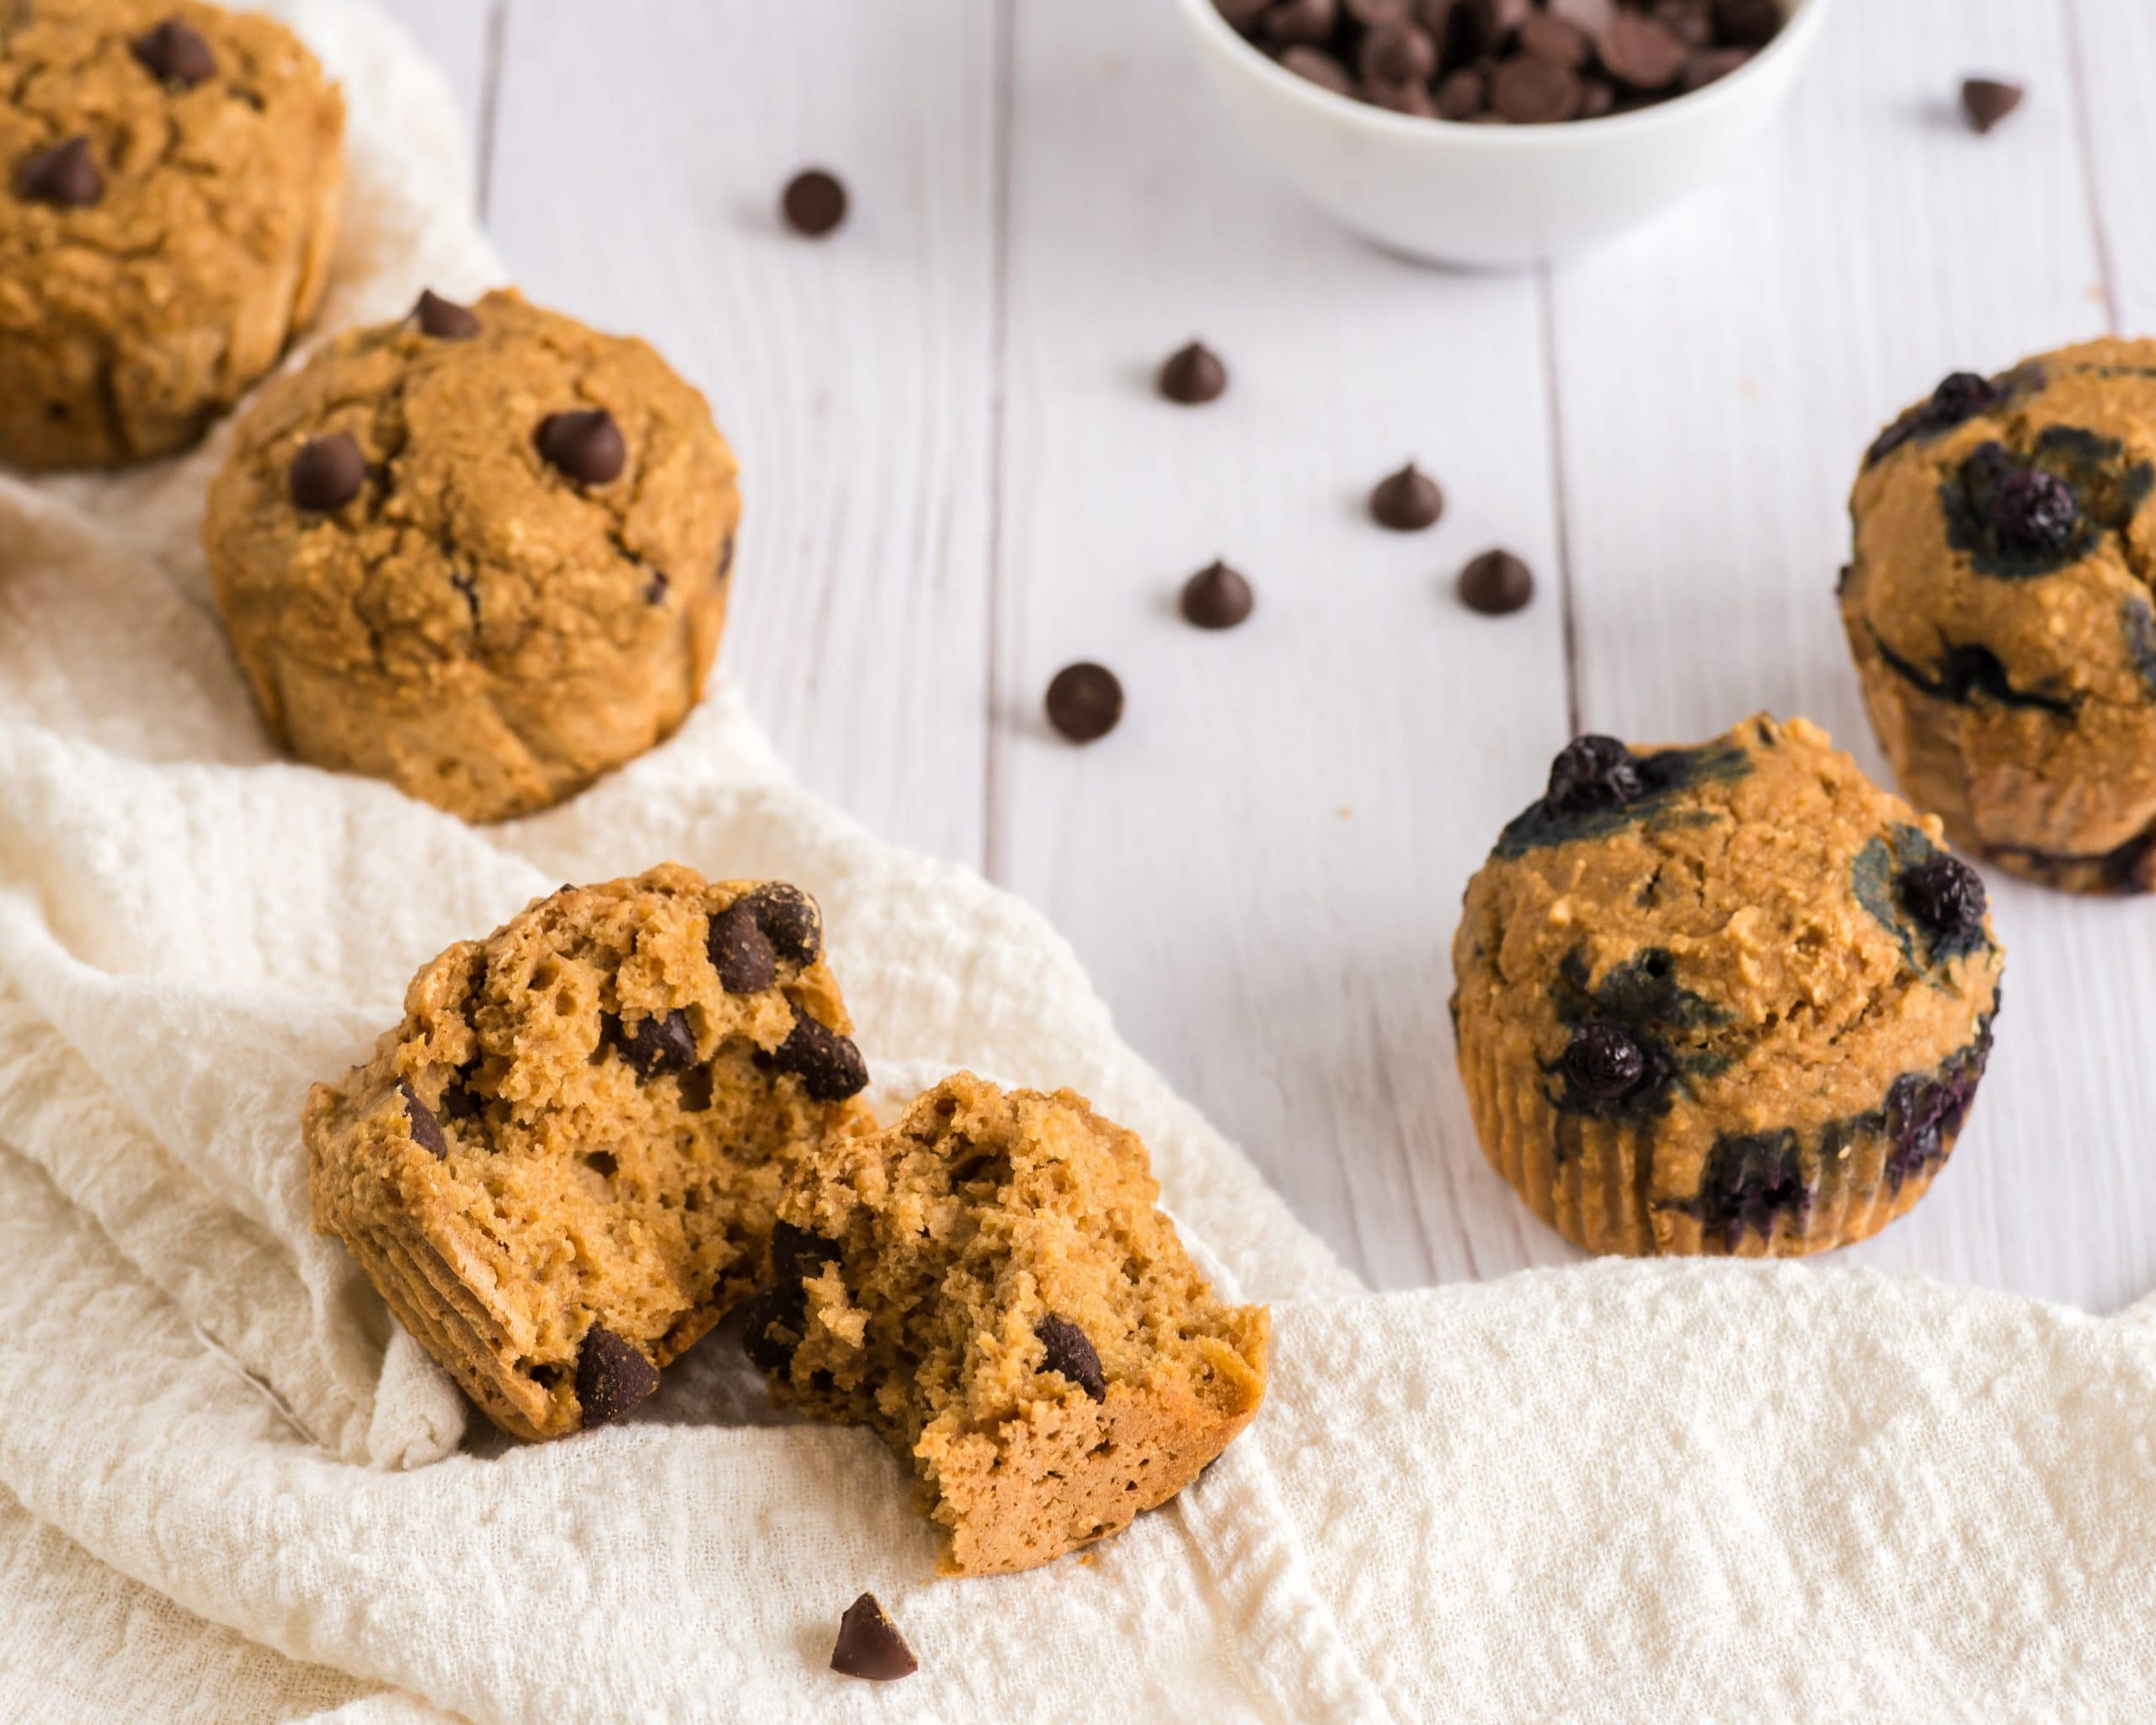 vegan chocolate chip muffins on table, one broken open